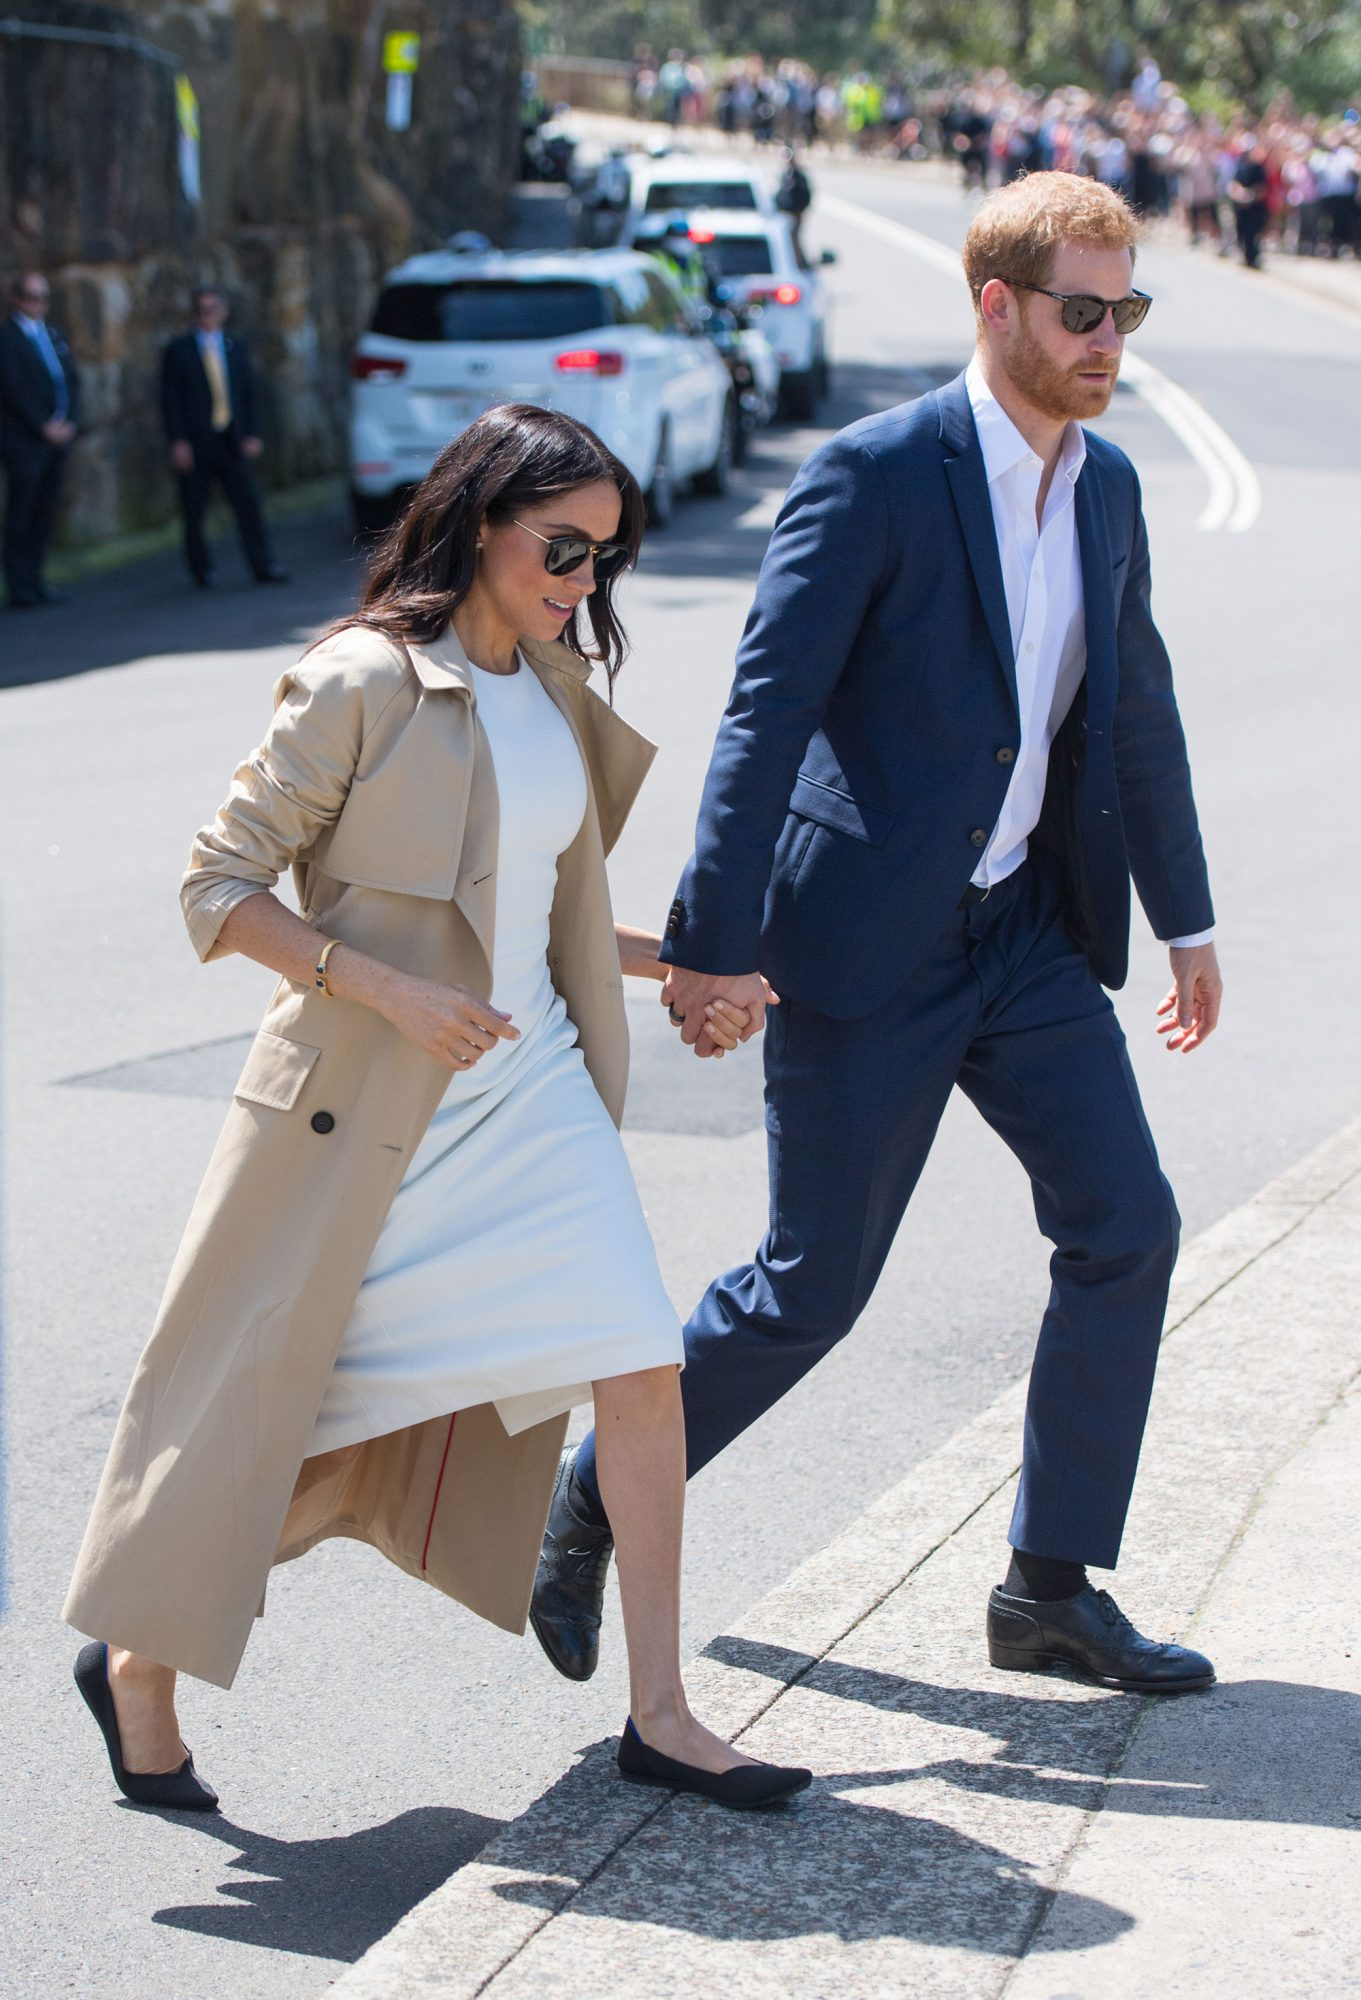 Prince Harry and Meghan Markle at Taronga Zoo